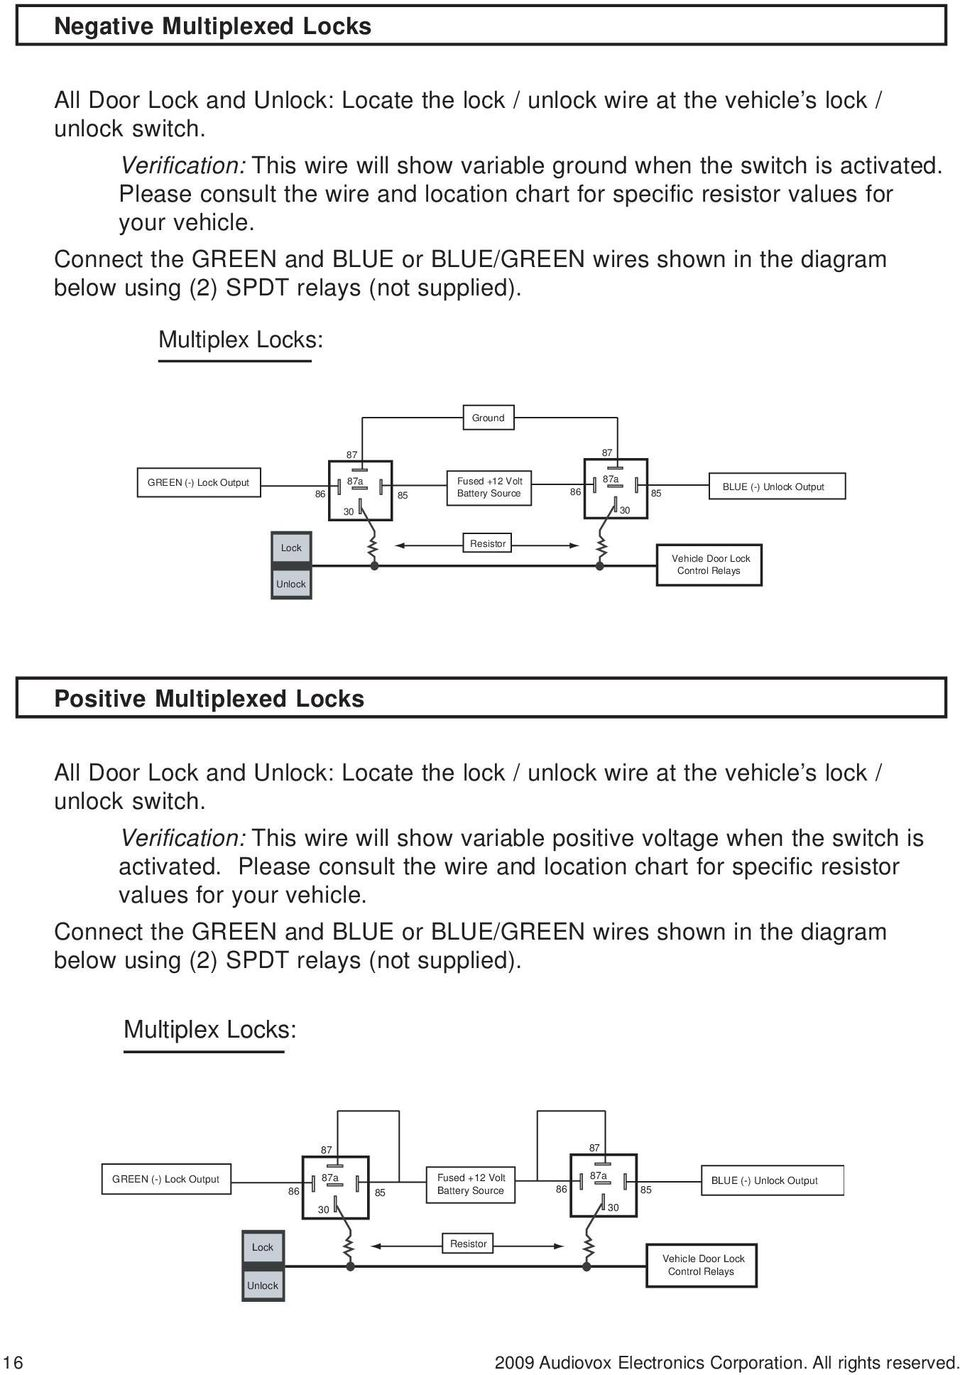 Security And Remote Start Installation Guide For Models Ca 6150 Pdf 1985 Dodge Truck Power Lock Wiring Diagram Connect The Green Blue Or Wires Shown In Below Using